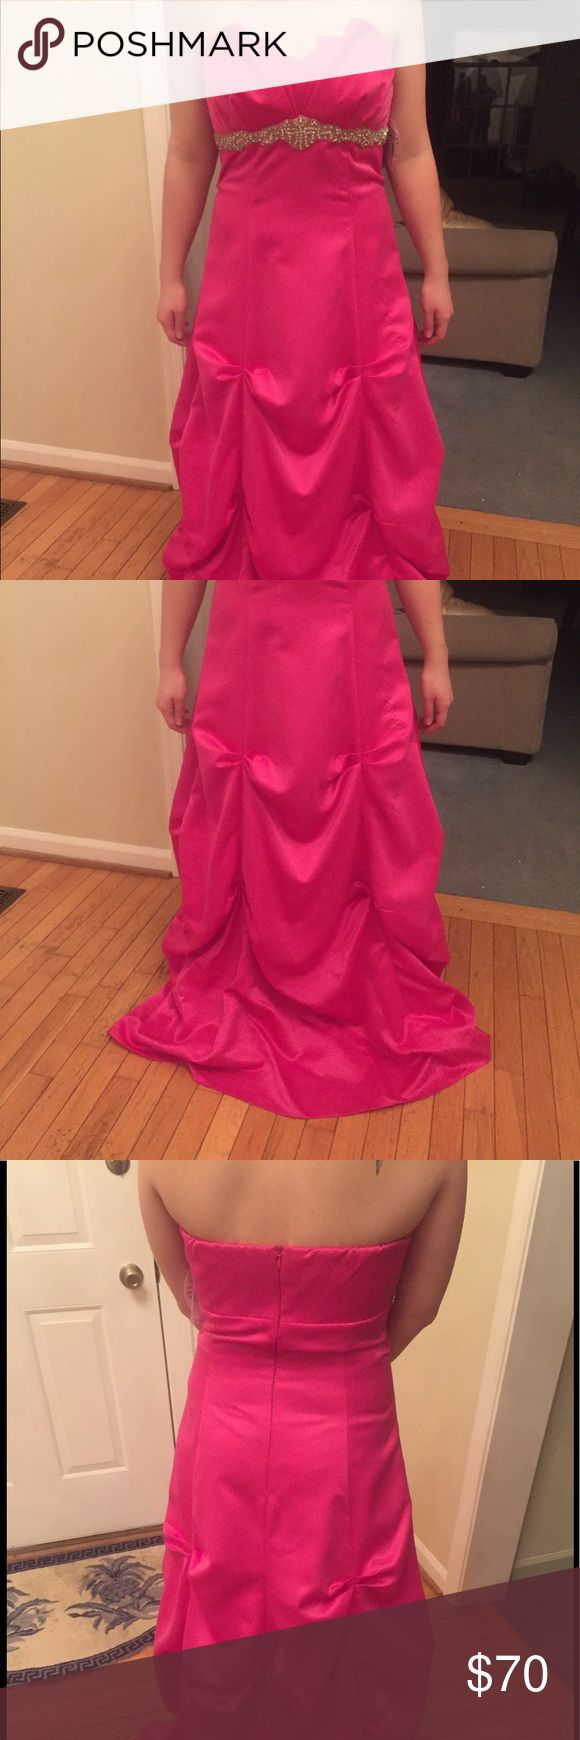 """Fuschia prom ball gown I bought this for prom a few years ago but I ended up not going so it has never been worn, still has the tags. Orig $139.99. It is sized as an 11 however I would say the sizing runs small because I usually wear a 6/8. I am 135 lbs. you can see the dress is too long for me, I am only 5' 2"""" so if you are a little taller and/or wear tall heels it won't need to be hemmed. Dresses Prom"""